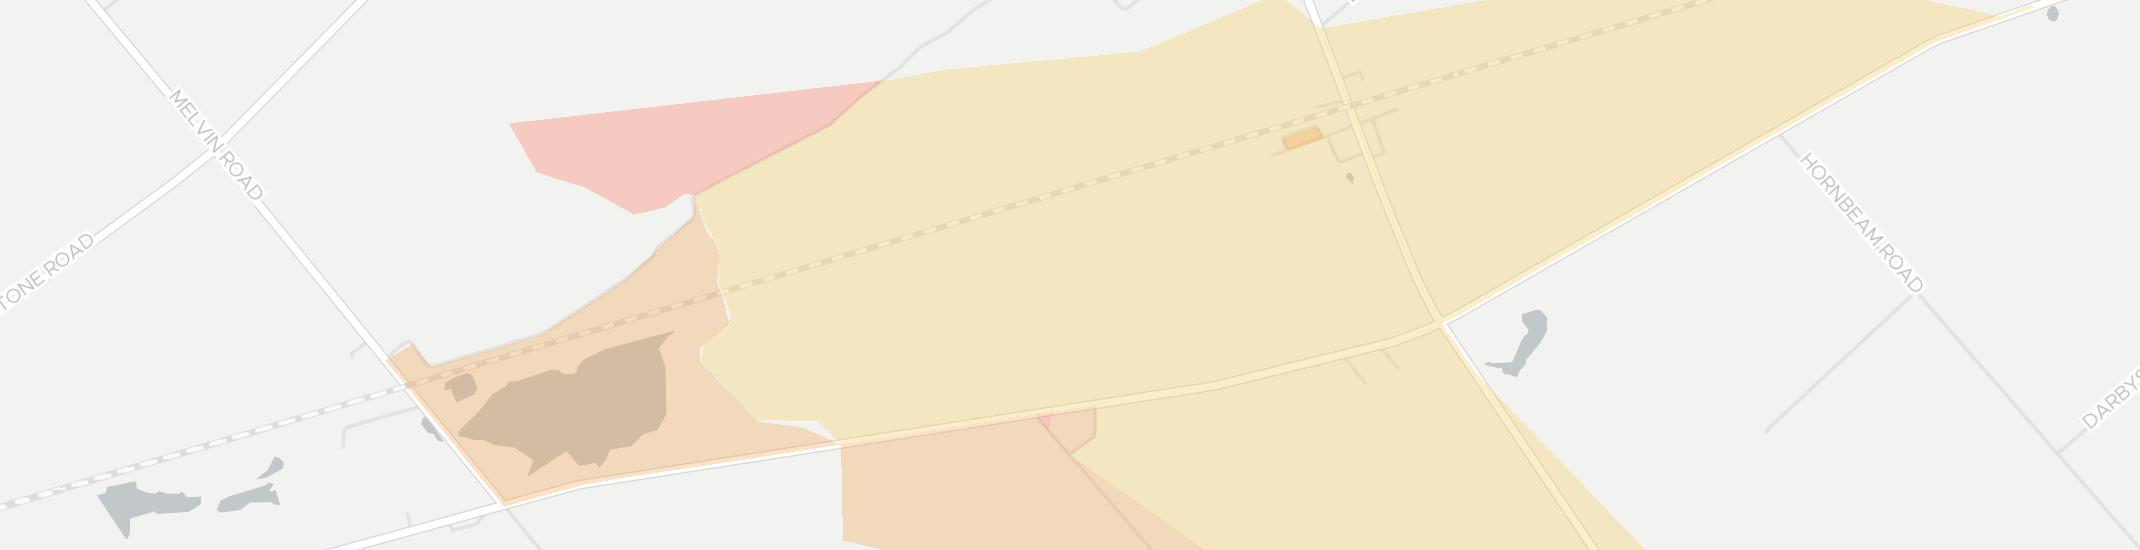 Reesville Internet Competition Map. Click for interactive map.